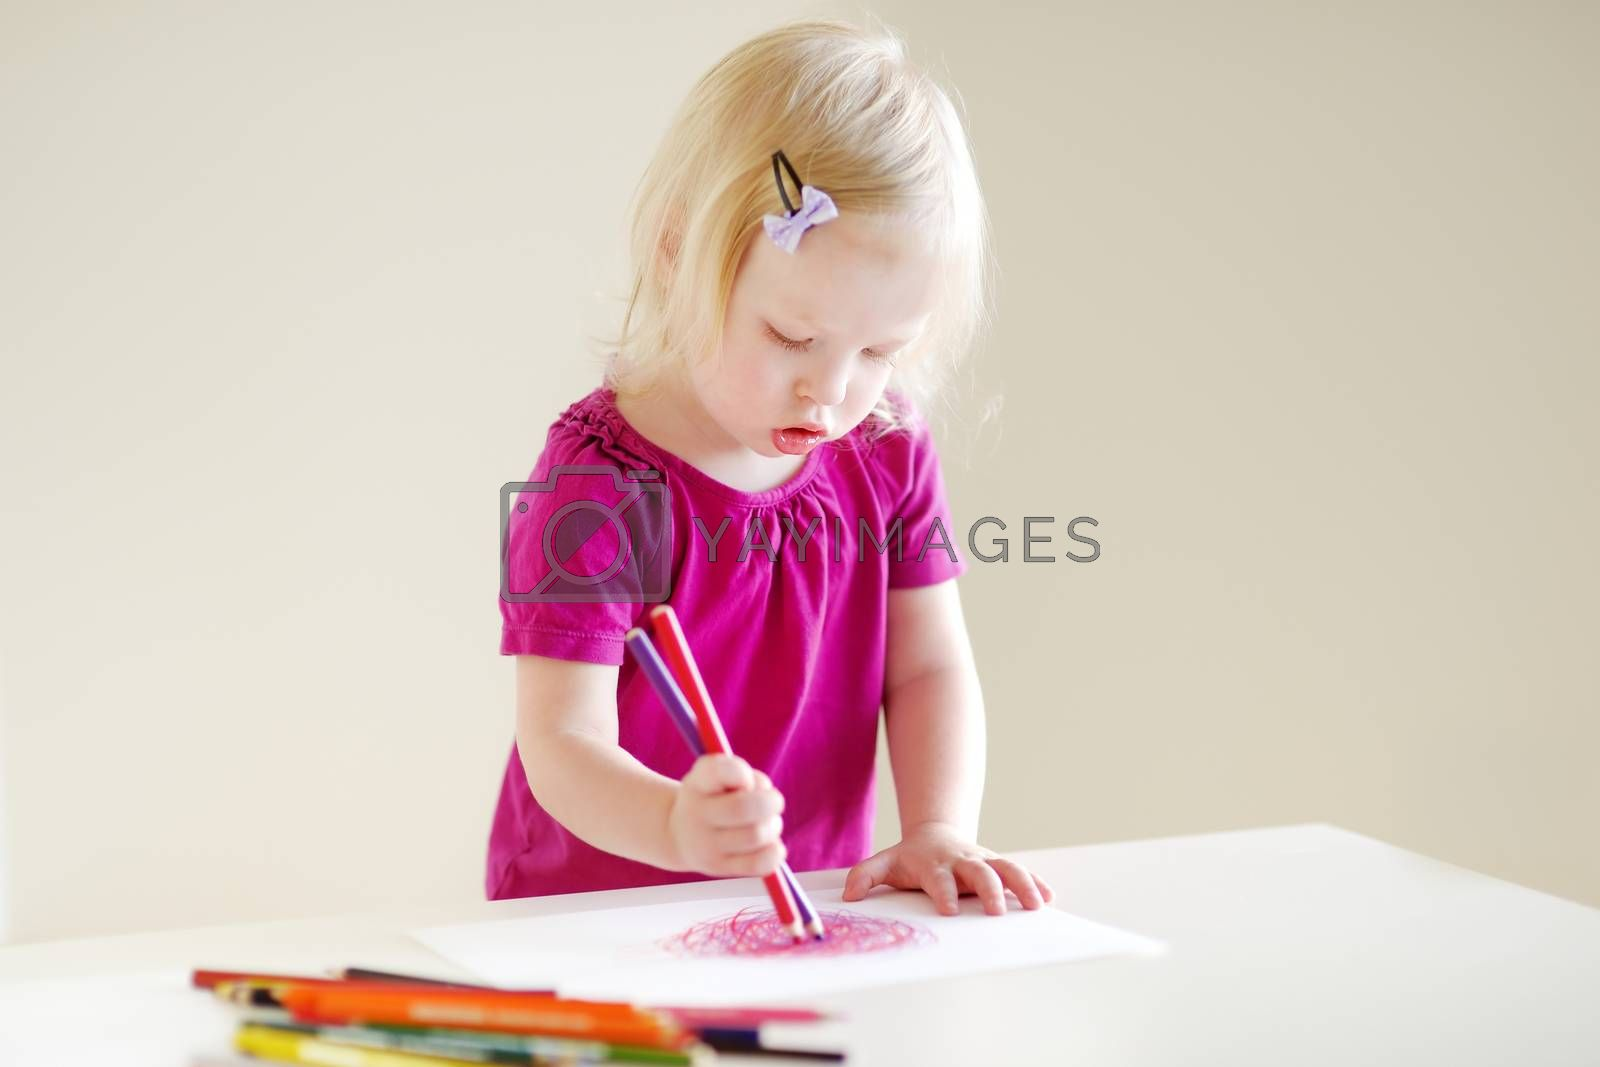 Cute little toddler girl trying to draw a picture with several pencils at once